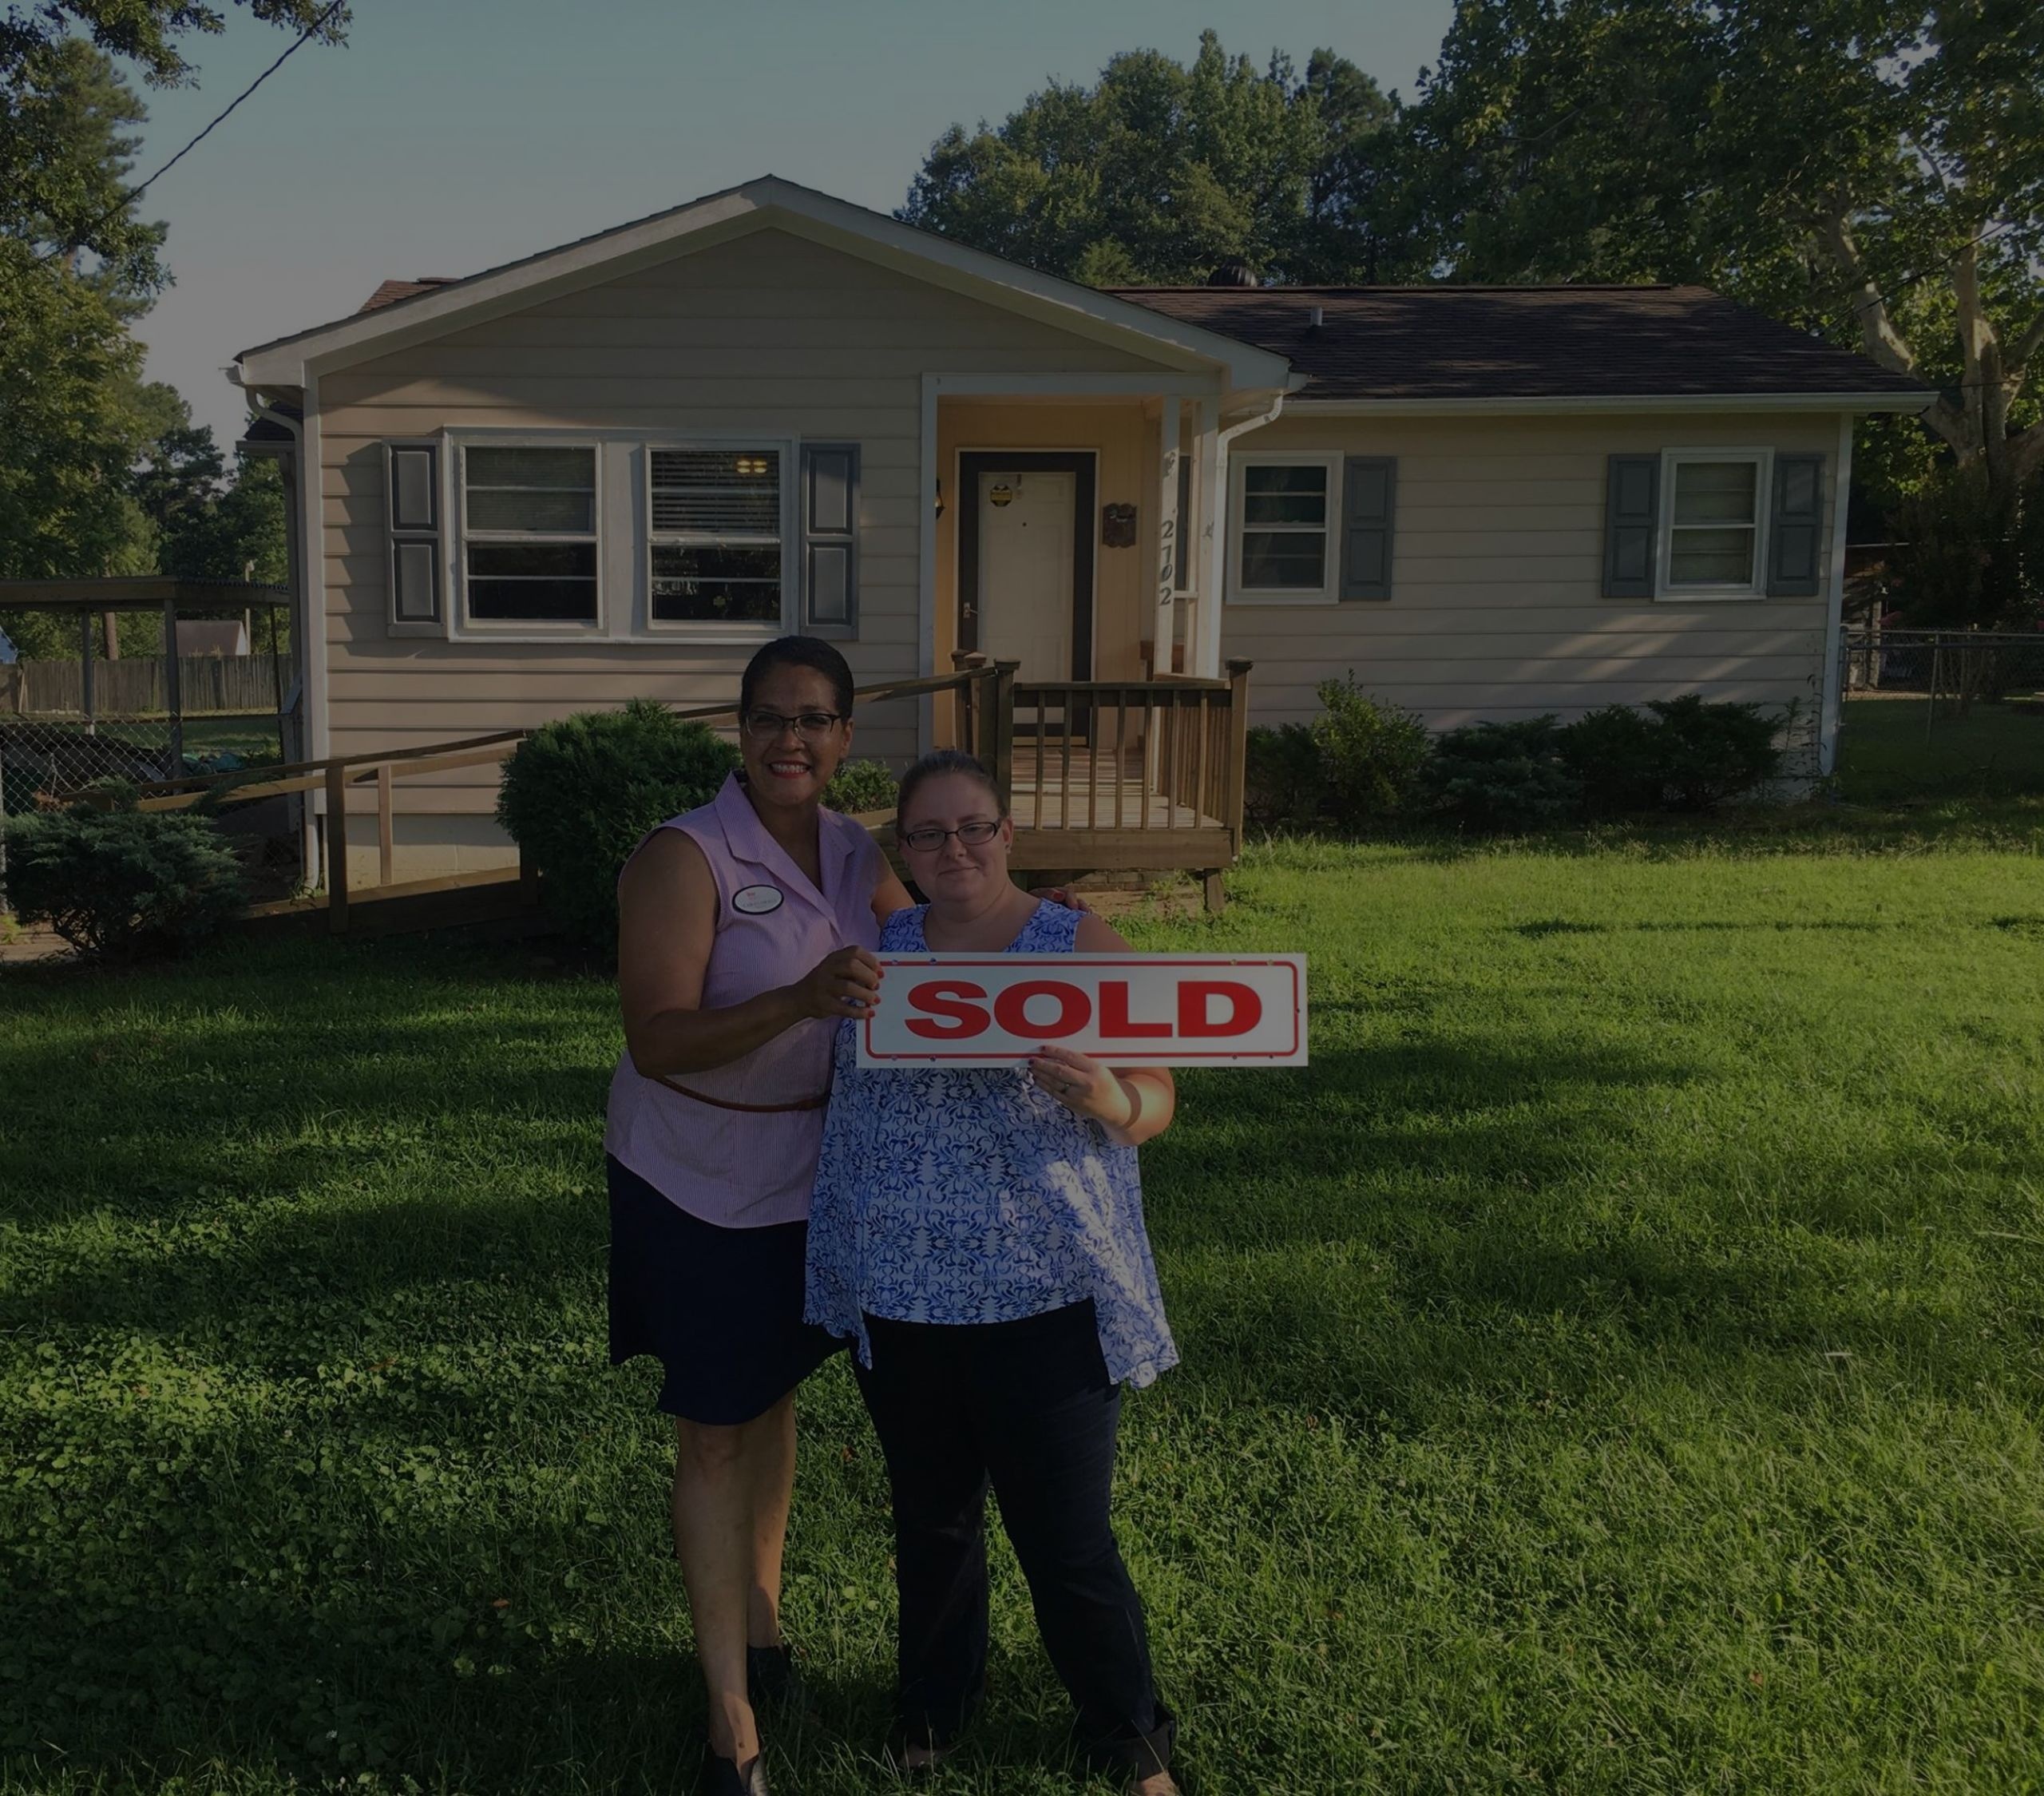 SOLD! Home and Land Sold Durham, NC